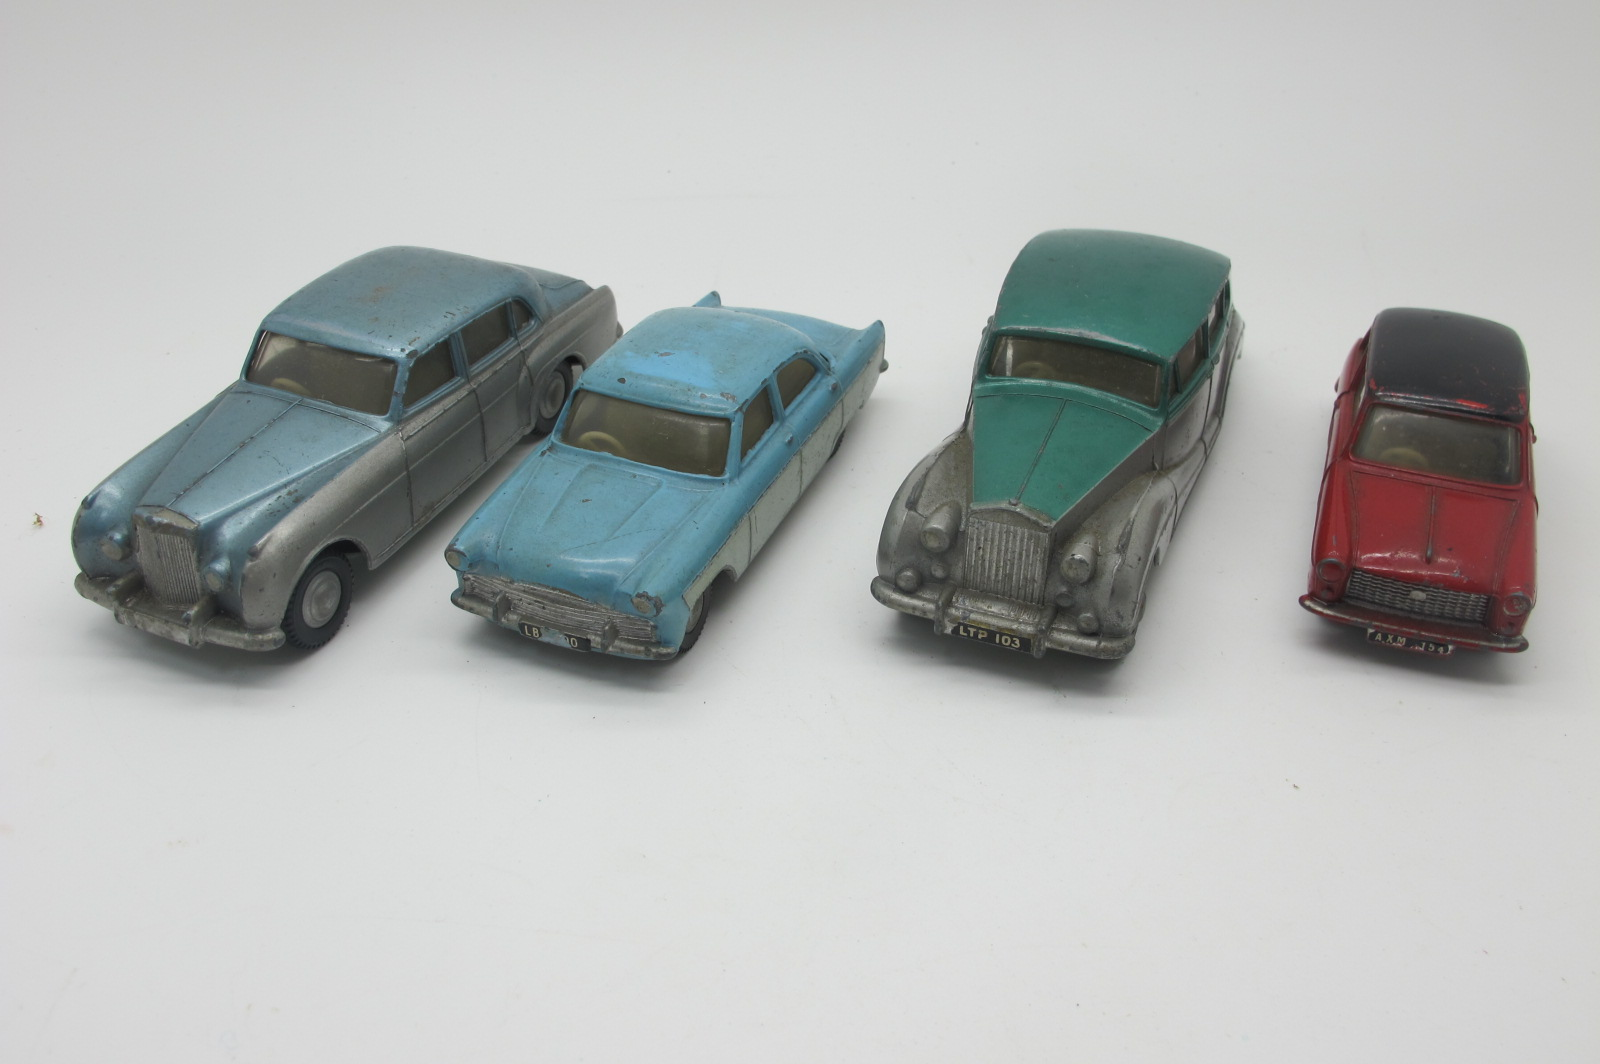 Four Original 1960's Diecast Cars, by Spot-On-Austin A40, Rolls Royce Silver Wraith, Ford Zodiac,